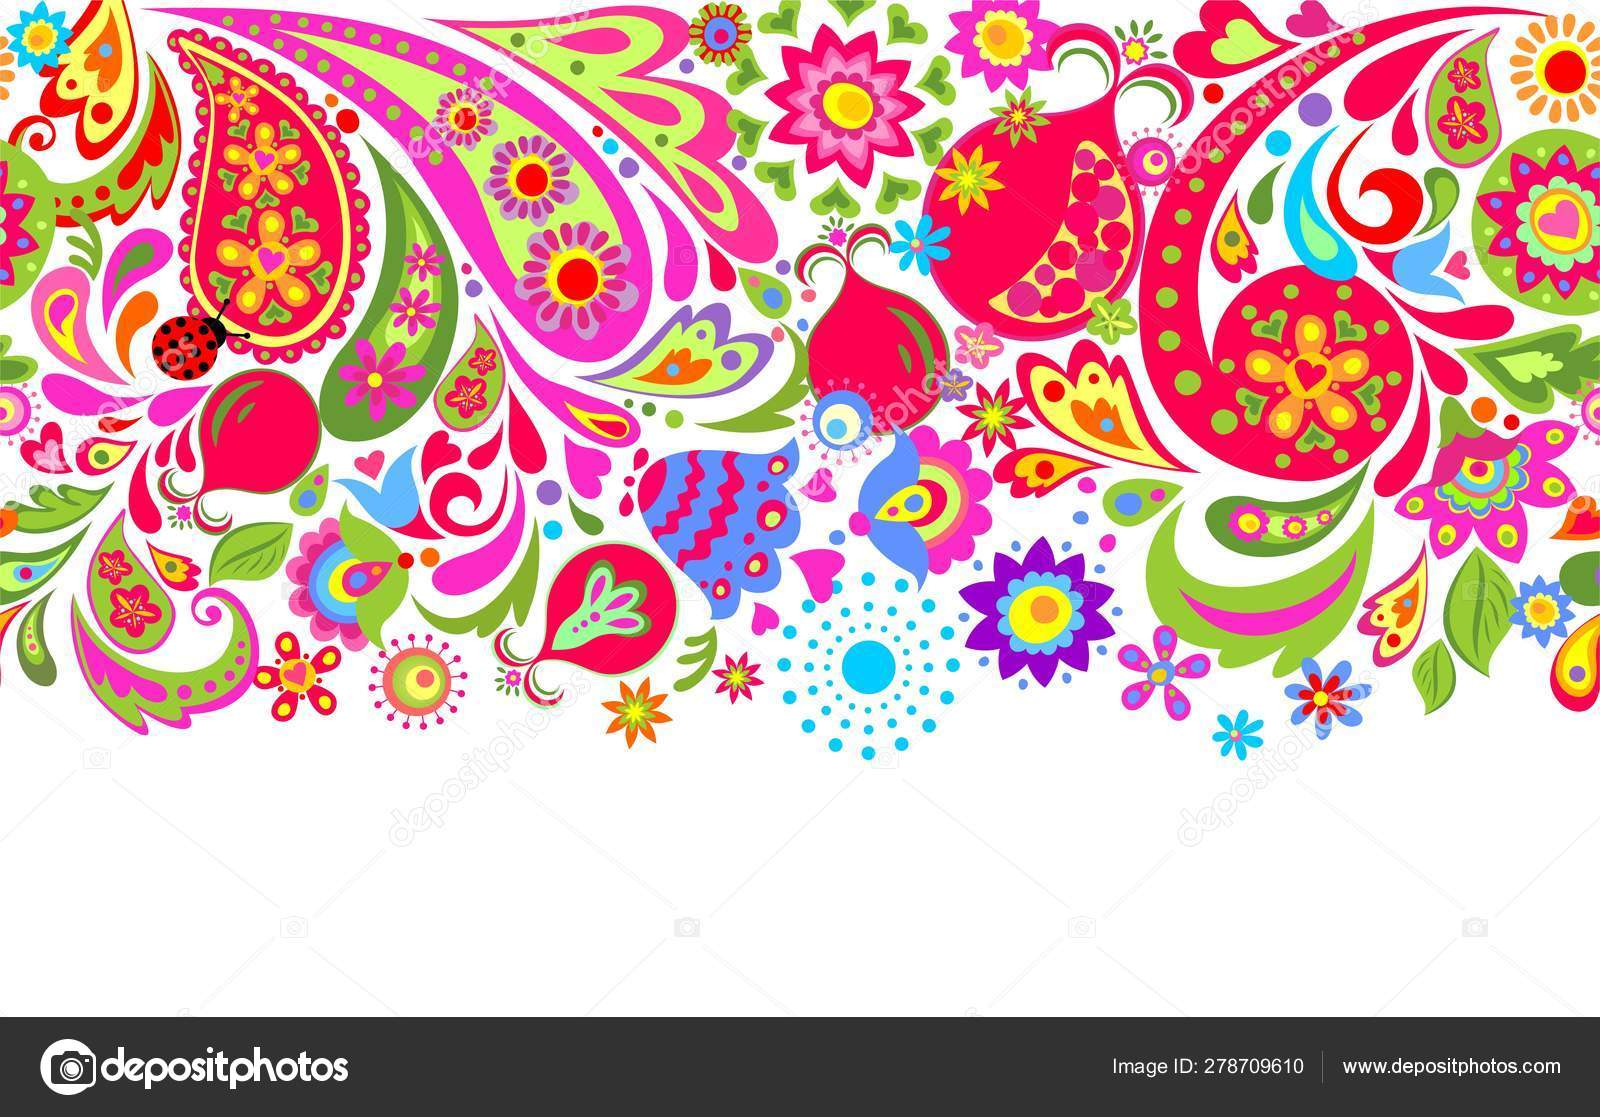 Floral Seamless Ethnic Border Colorful Abstract Flowers